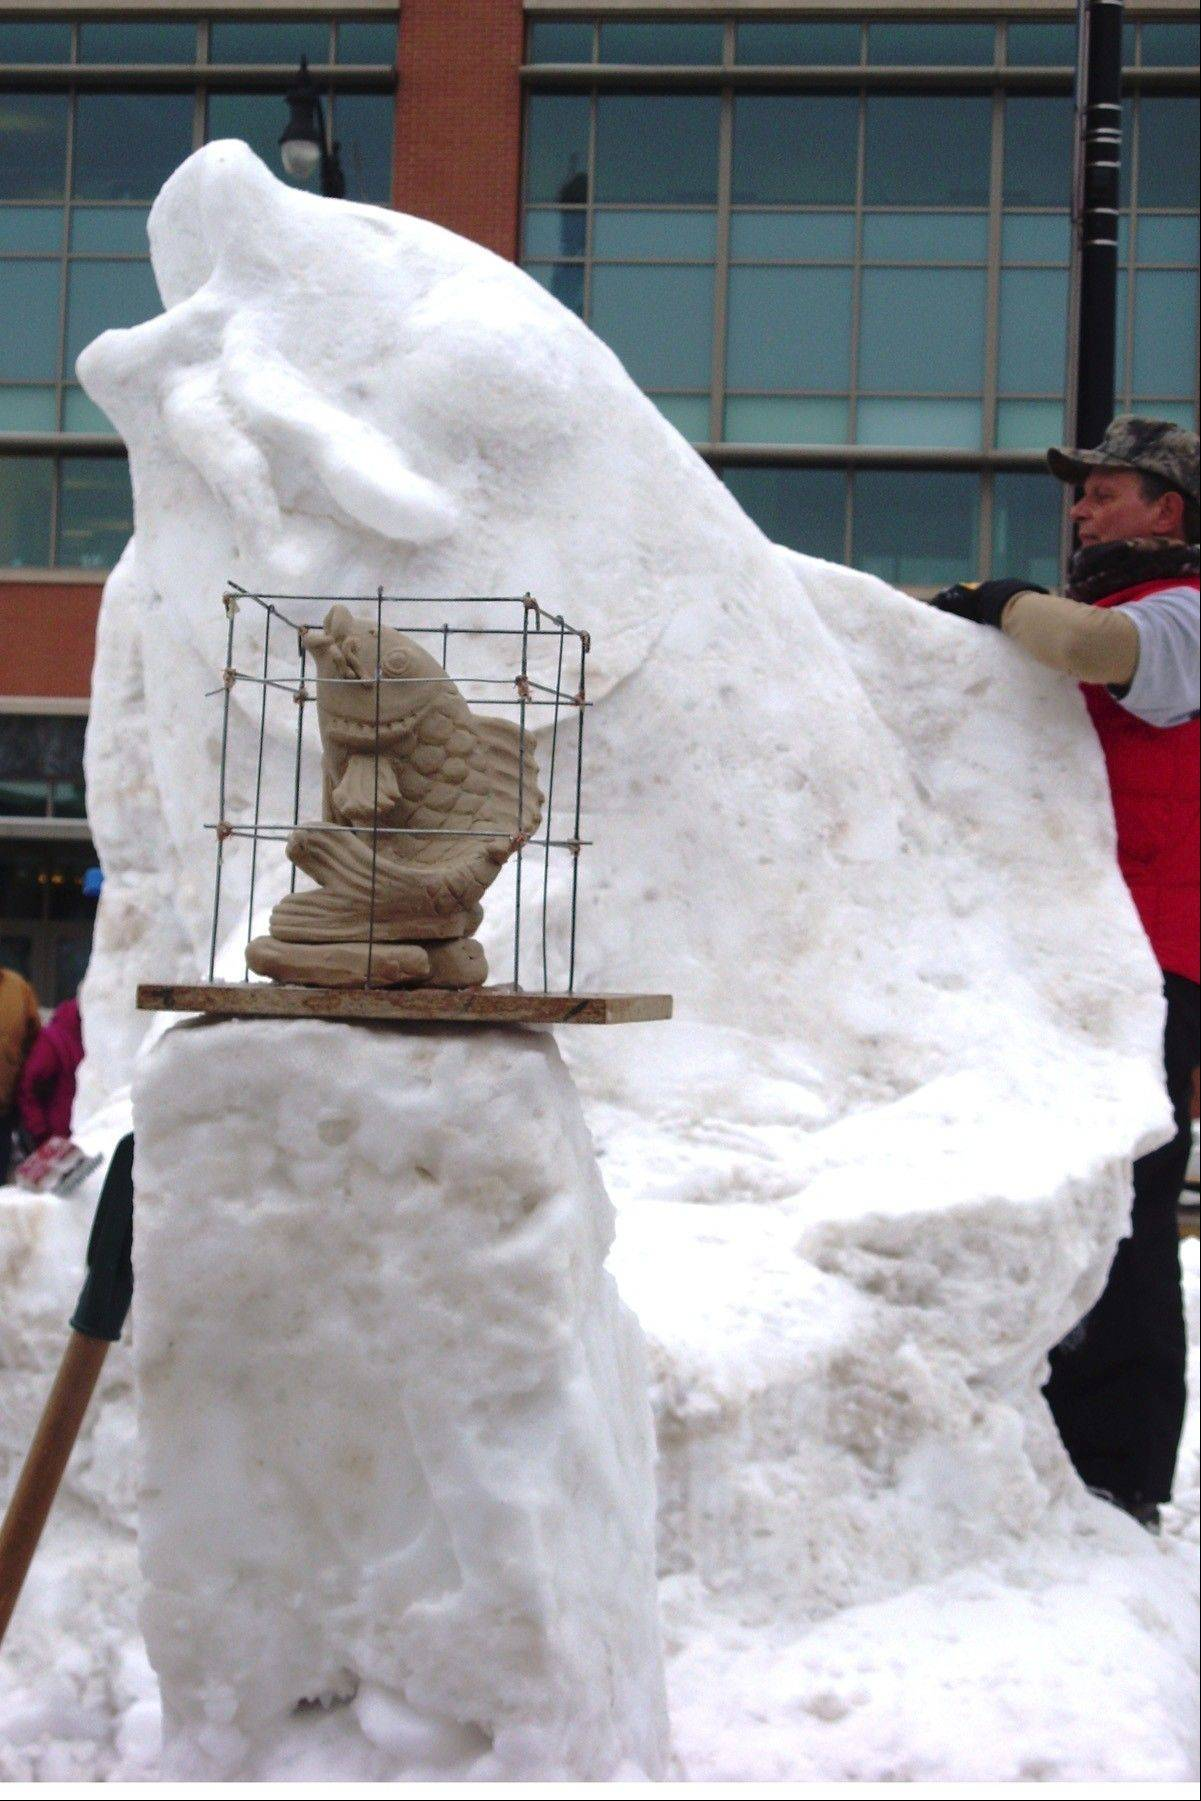 Admission is free for the Wisconsin State Snow Sculpting Competition Friday through Sunday, Jan. 10-12, at Monument Square in downtown Racine, Wis.